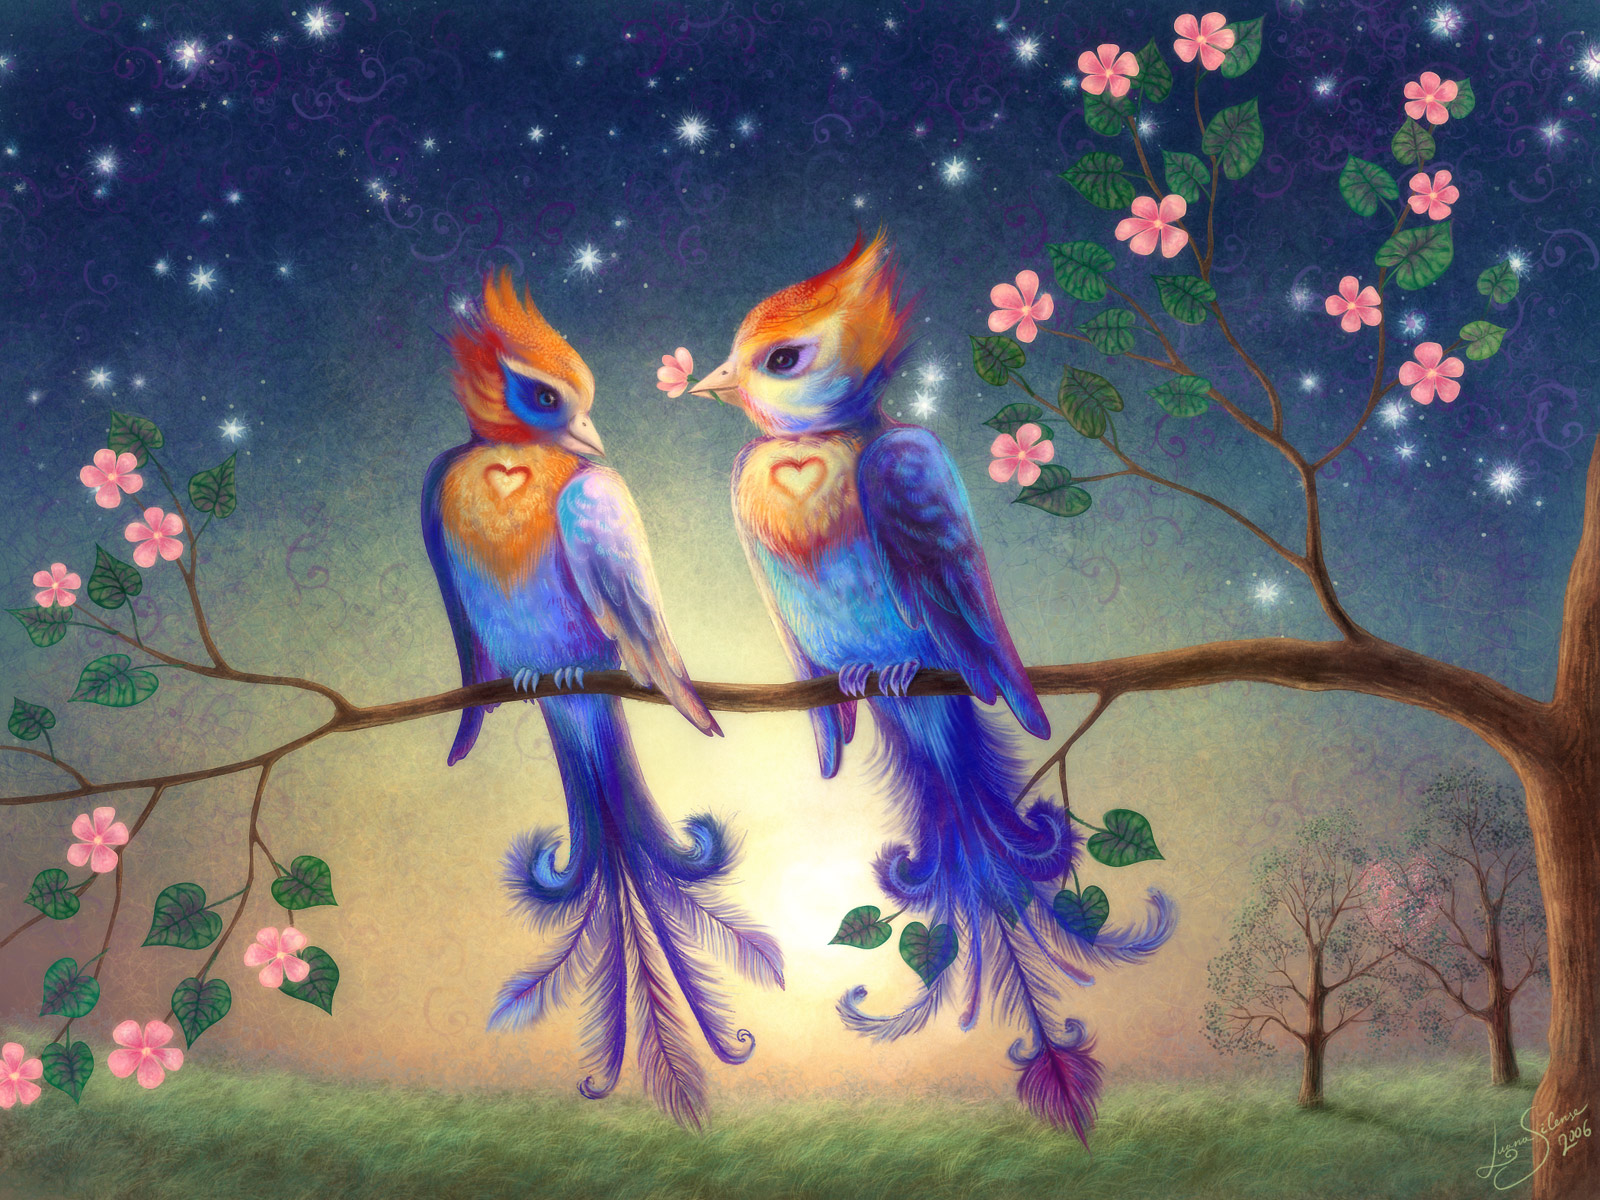 Beautiful Wallpaper About Love : Beautiful love birds wallpapers Funny Animal